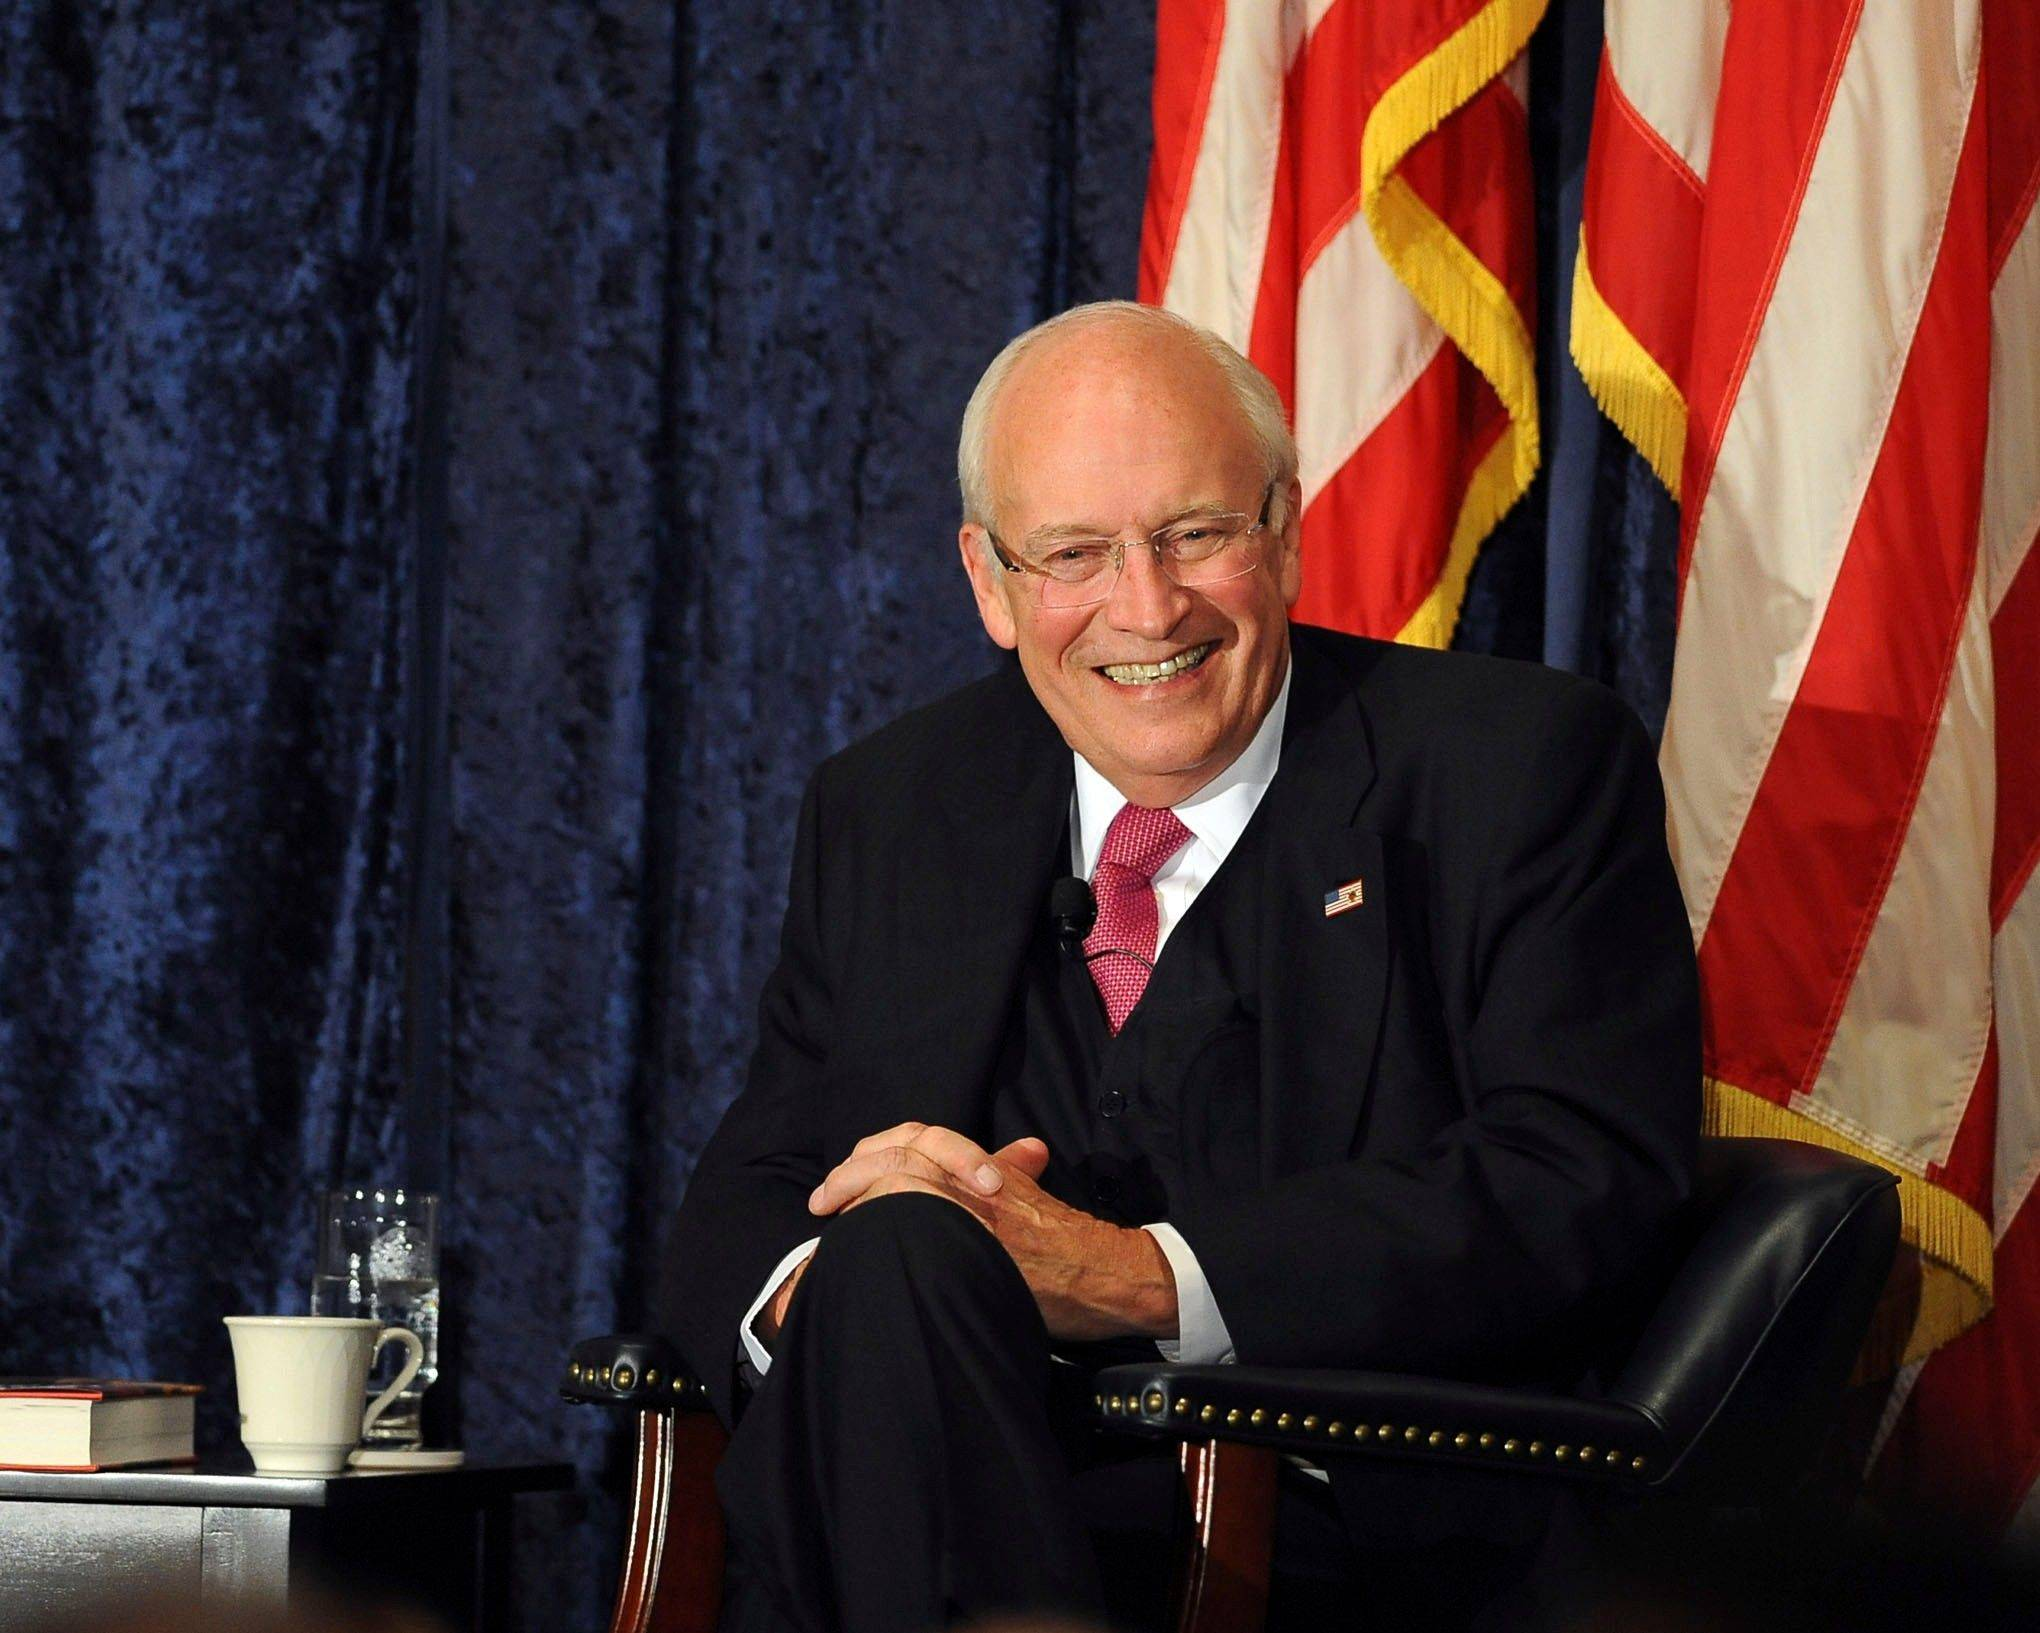 Former Vice President Dick Cheney gives a lecture at the Richard Nixon Library in Yorba Linda on Wednesday night.